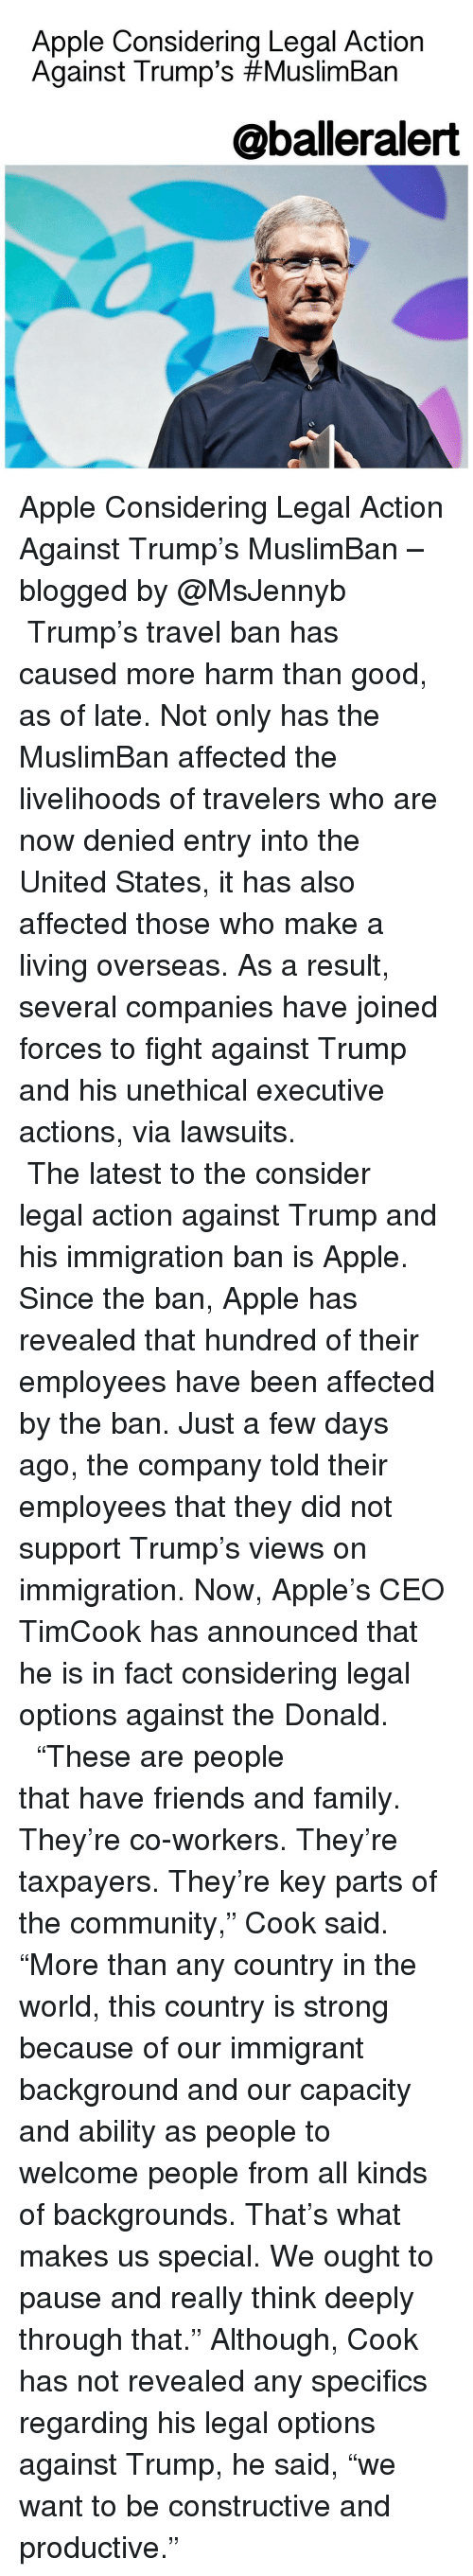 """The Donald: Apple Considering Legal Action  Against Trump's #Muslim Ban  @balleralert Apple Considering Legal Action Against Trump's MuslimBan – blogged by @MsJennyb ⠀⠀⠀⠀⠀⠀⠀⠀⠀ ⠀⠀⠀⠀⠀⠀⠀⠀⠀ Trump's travel ban has caused more harm than good, as of late. Not only has the MuslimBan affected the livelihoods of travelers who are now denied entry into the United States, it has also affected those who make a living overseas. As a result, several companies have joined forces to fight against Trump and his unethical executive actions, via lawsuits. ⠀⠀⠀⠀⠀⠀⠀⠀⠀ ⠀⠀⠀⠀⠀⠀⠀⠀⠀ The latest to the consider legal action against Trump and his immigration ban is Apple. Since the ban, Apple has revealed that hundred of their employees have been affected by the ban. Just a few days ago, the company told their employees that they did not support Trump's views on immigration. Now, Apple's CEO TimCook has announced that he is in fact considering legal options against the Donald. ⠀⠀⠀⠀⠀⠀⠀⠀⠀ ⠀⠀⠀⠀⠀⠀⠀⠀⠀ """"These are people that have friends and family. They're co-workers. They're taxpayers. They're key parts of the community,"""" Cook said. """"More than any country in the world, this country is strong because of our immigrant background and our capacity and ability as people to welcome people from all kinds of backgrounds. That's what makes us special. We ought to pause and really think deeply through that."""" Although, Cook has not revealed any specifics regarding his legal options against Trump, he said, """"we want to be constructive and productive."""""""